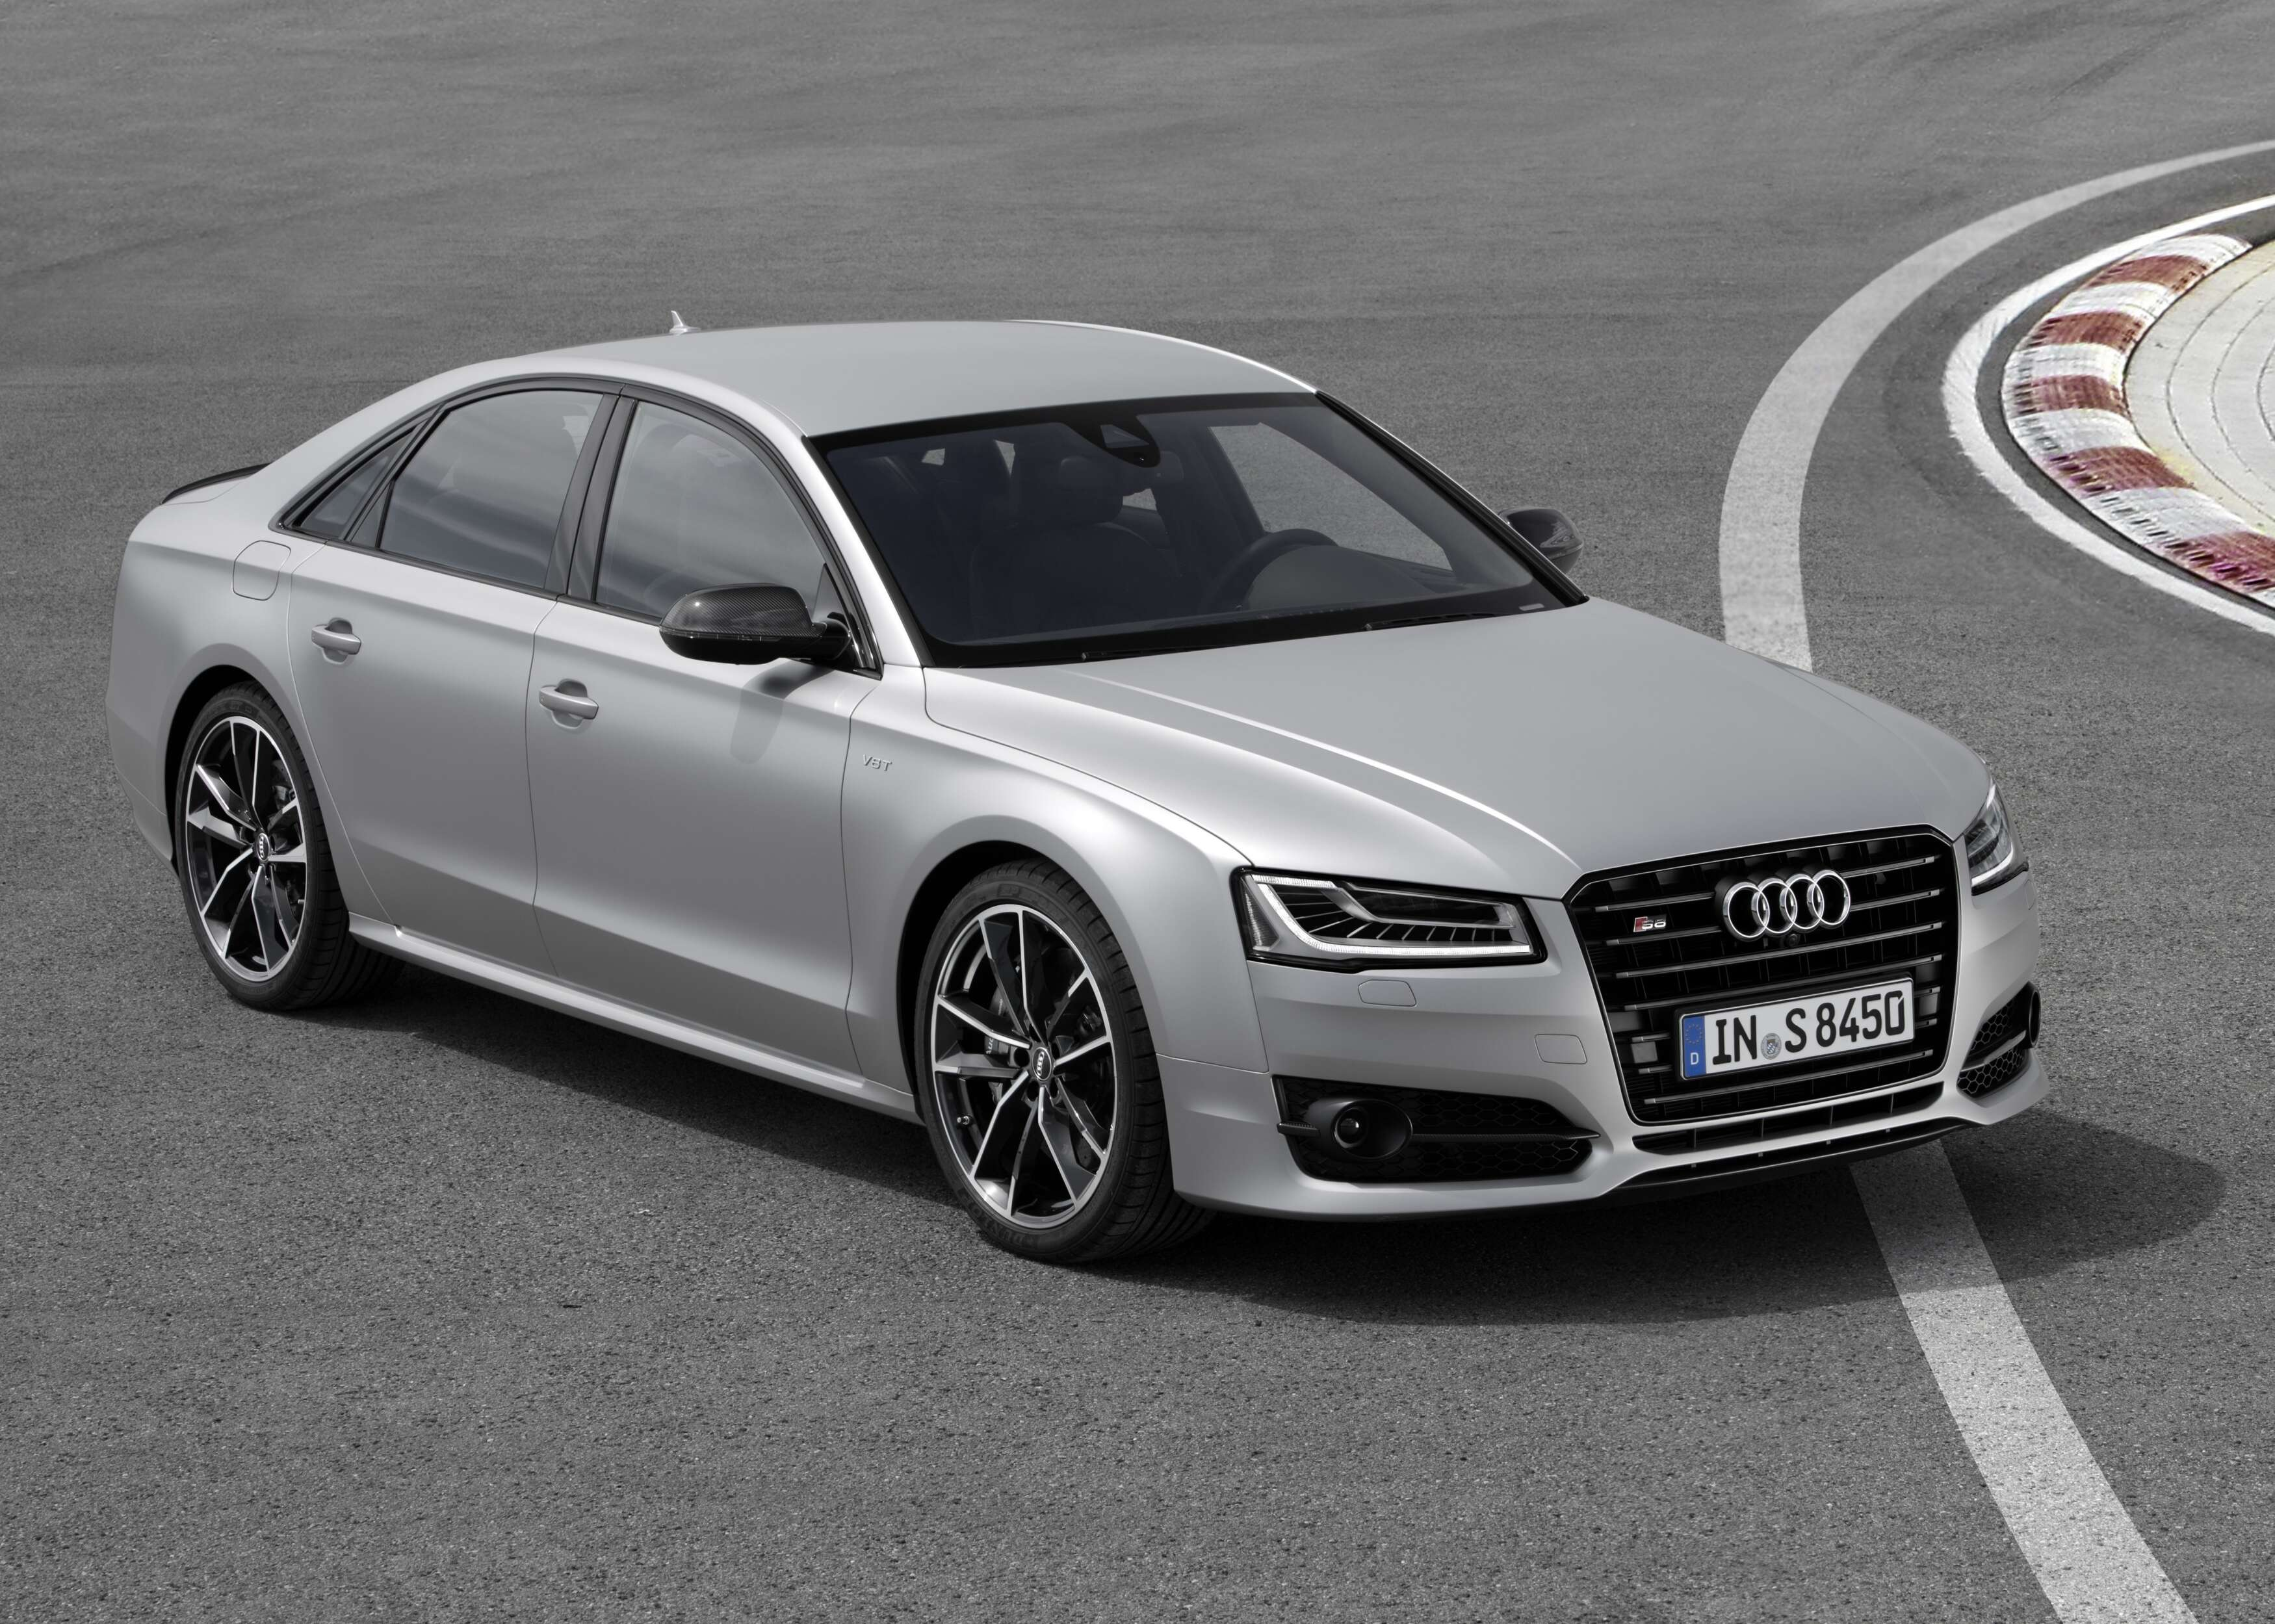 Audi S Plus Romps With The Worlds Fastest FourDoors The Drive - Audi car top model